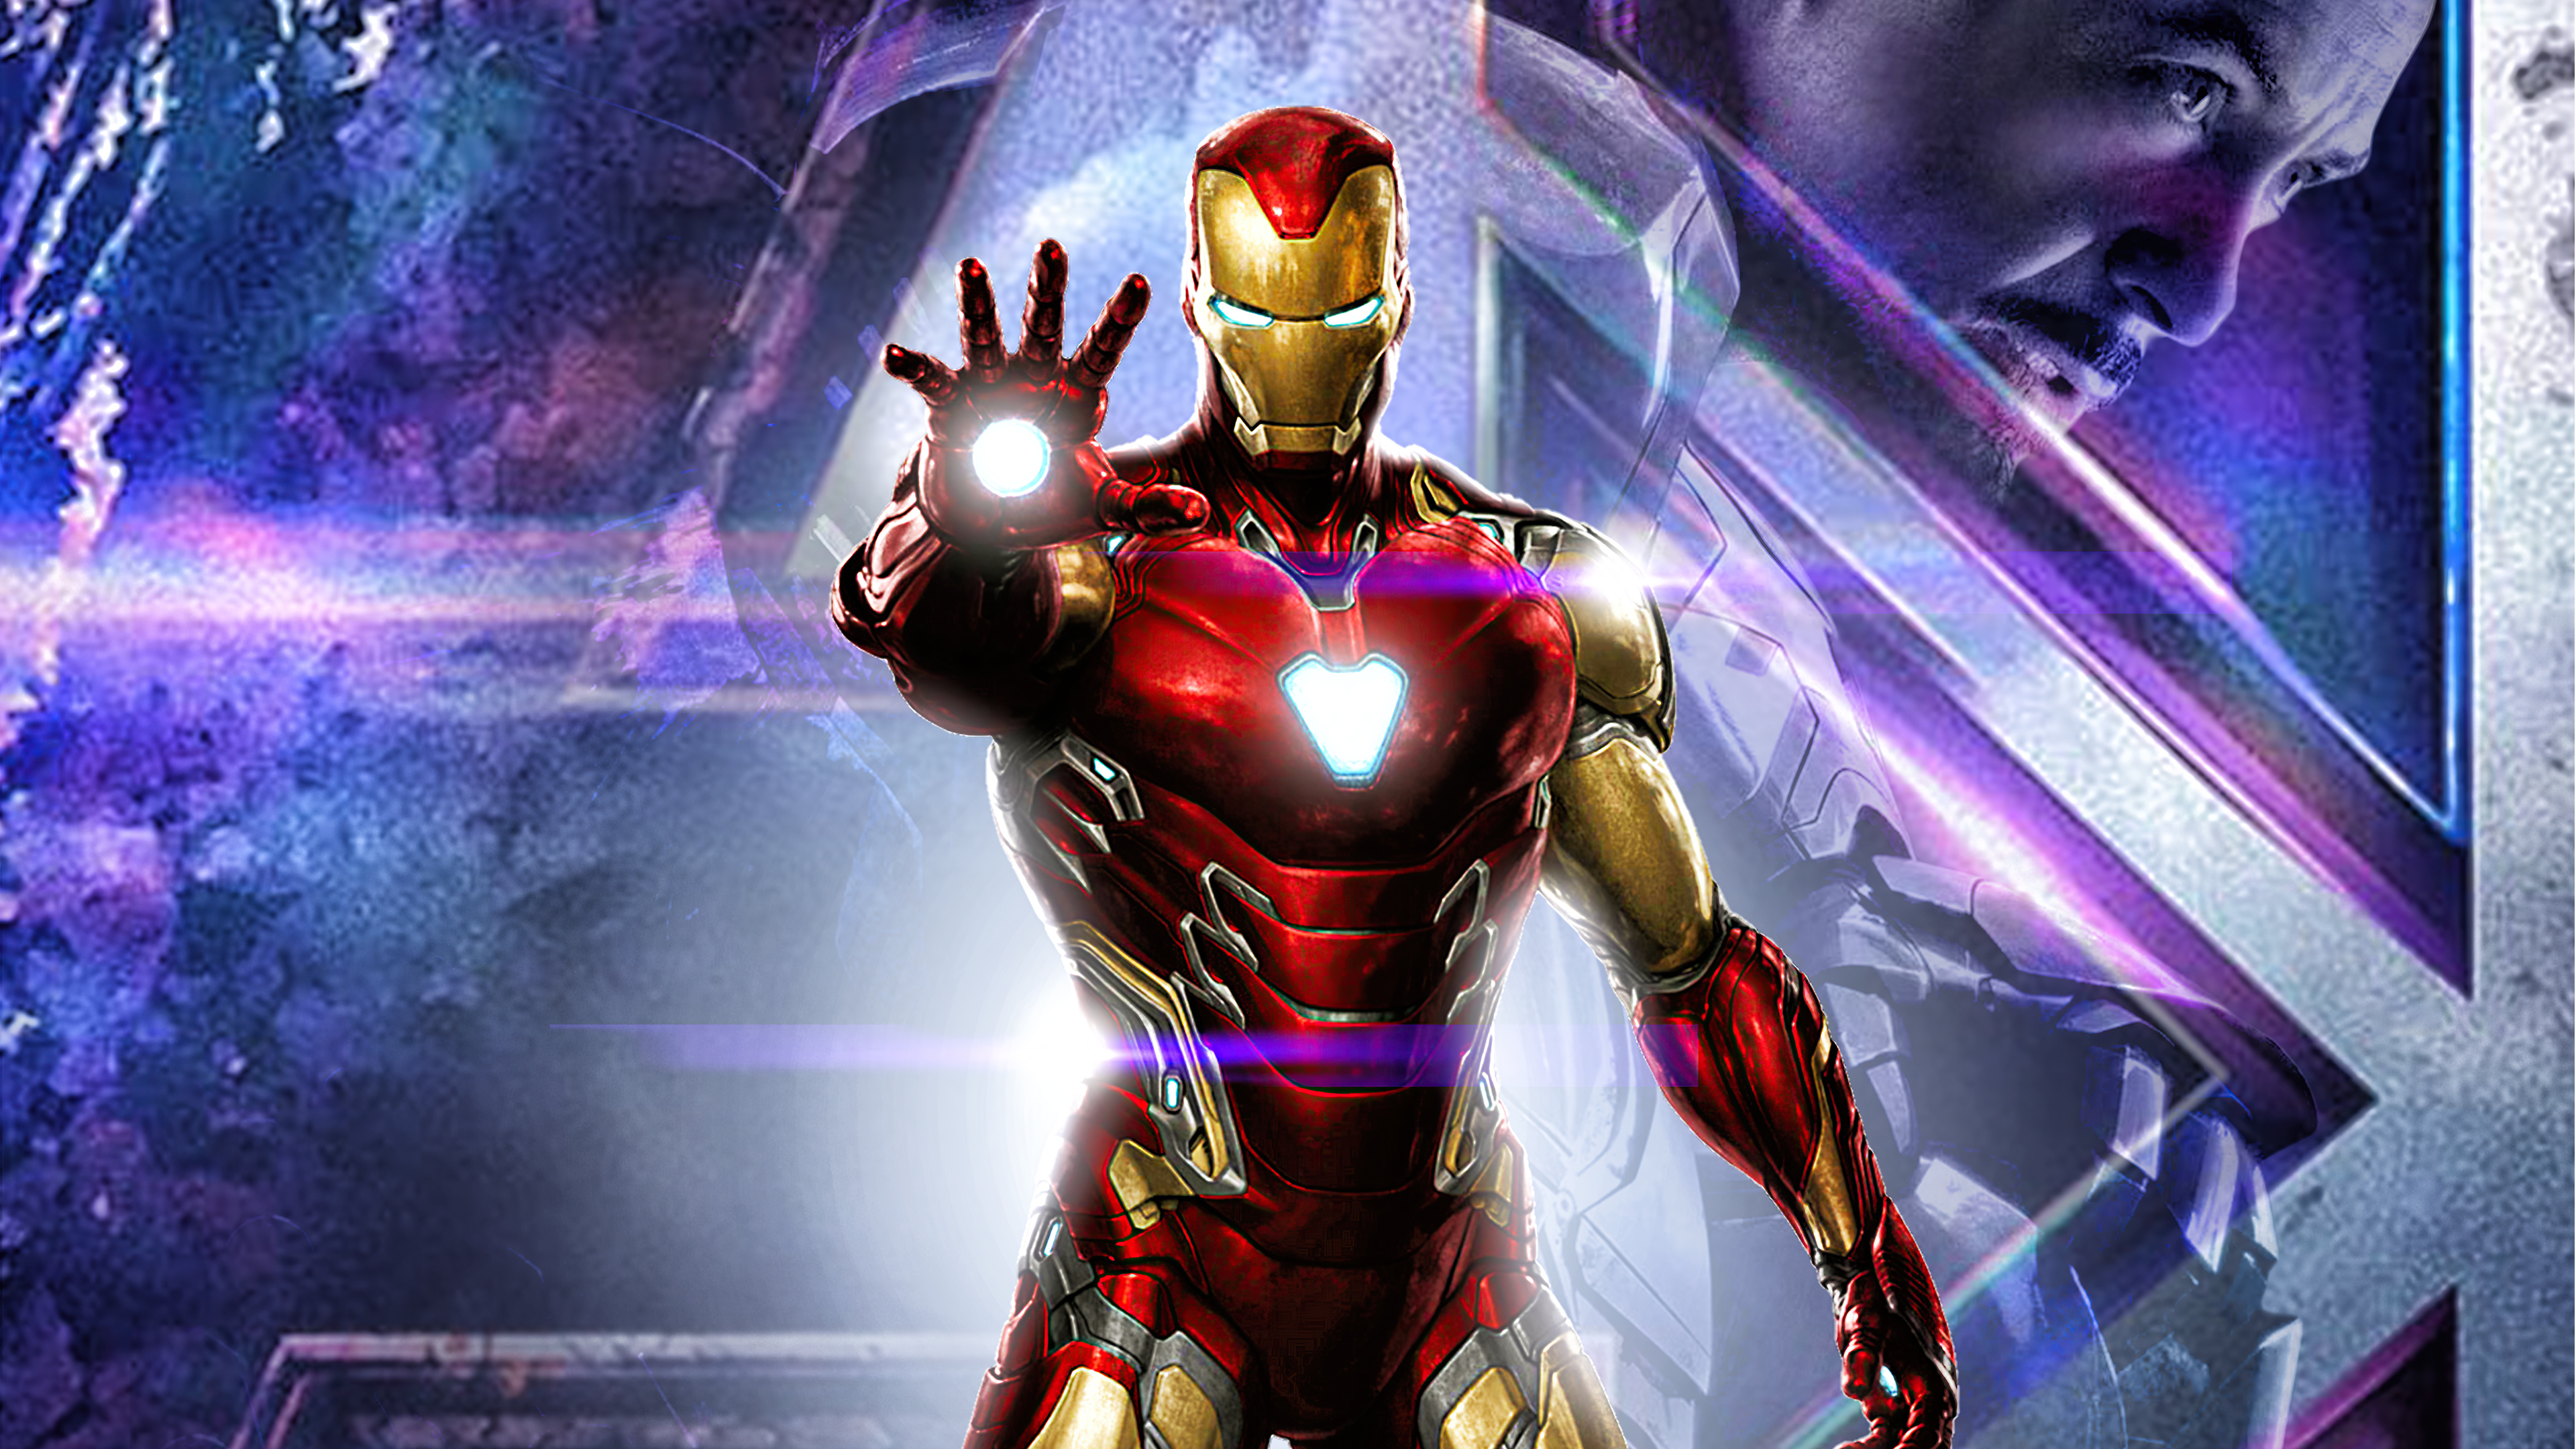 1920x1080 Iron Man Avengers Endgame 2020 Laptop Full Hd 1080p Hd 4k Wallpapers Images Backgrounds Photos And Pictures